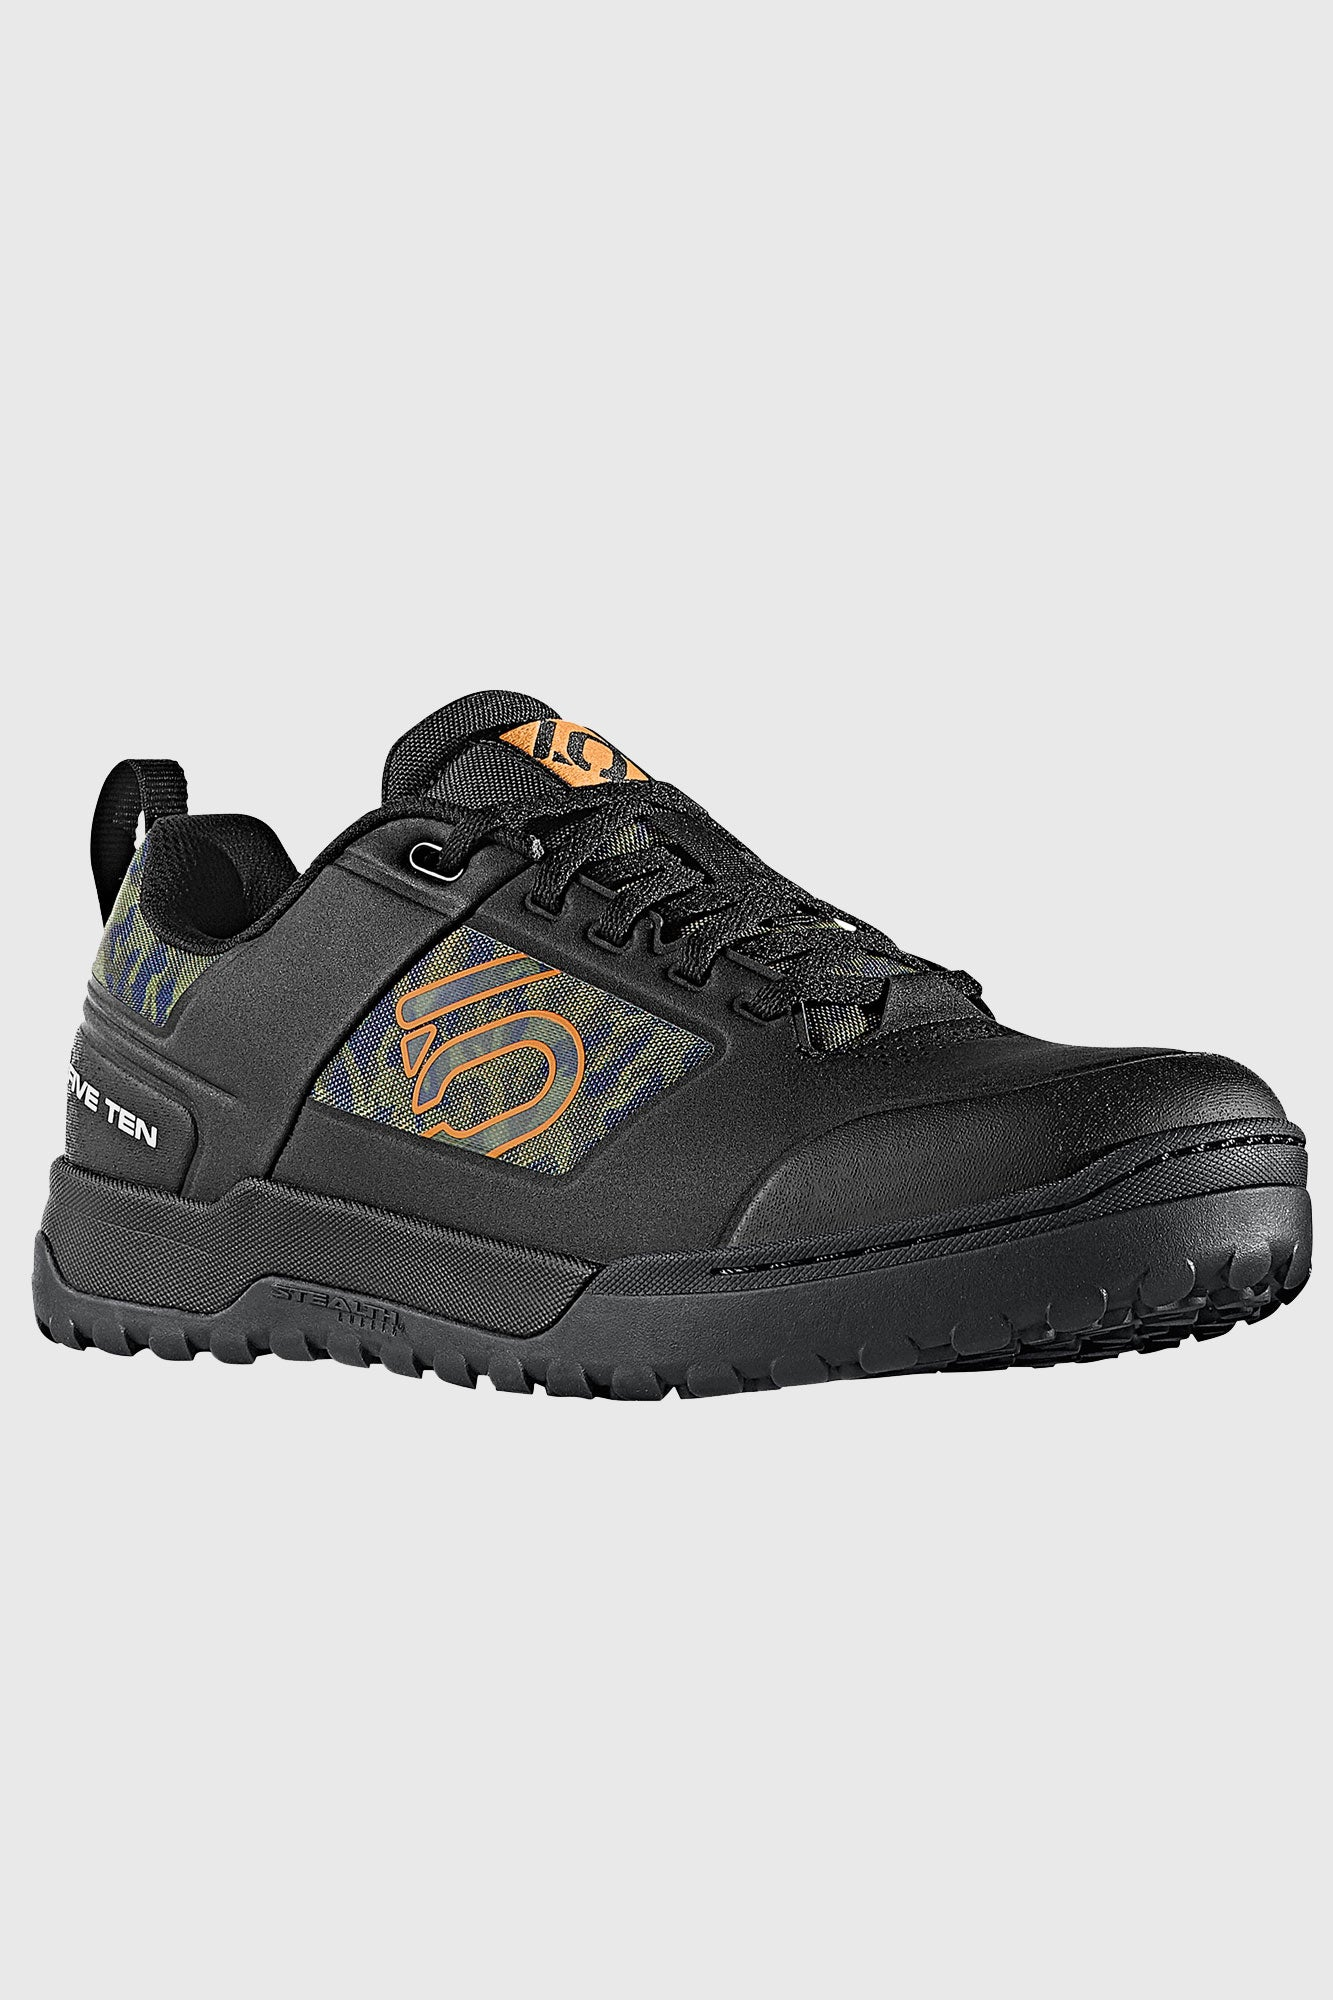 Five Ten Impact Pro Black Camo Shoe